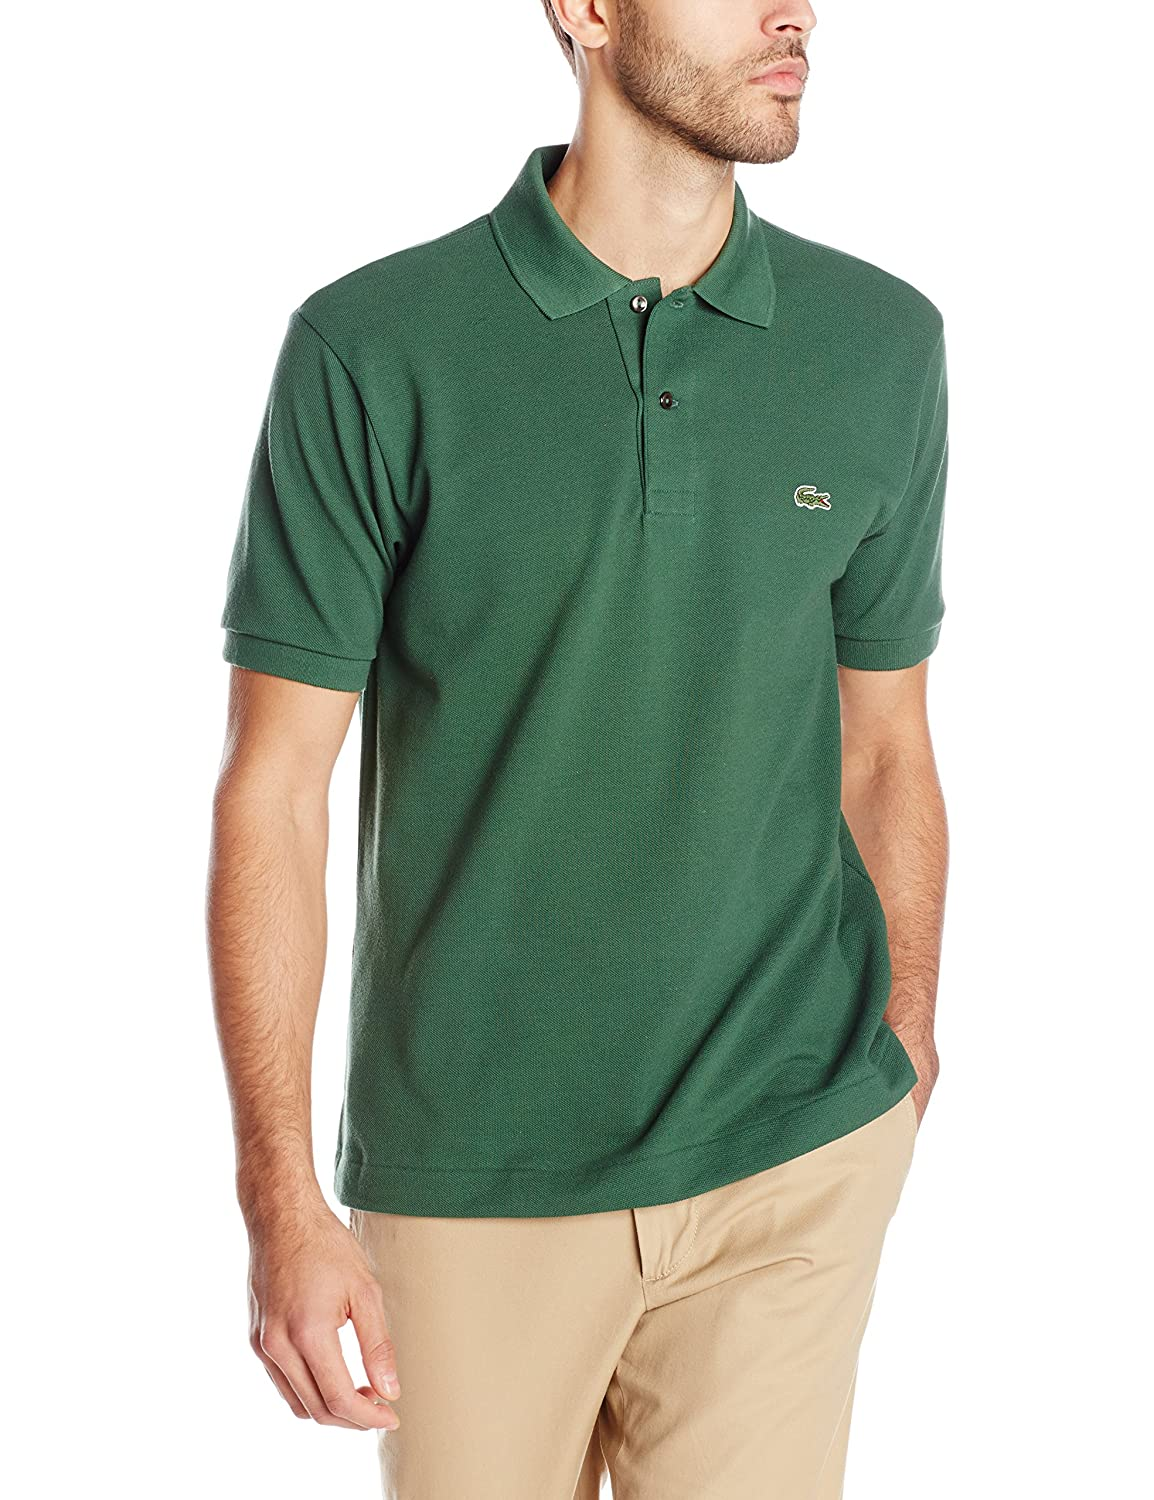 on feet shots of various design where to buy Lacoste Men's Classic Short Sleeve L.12.12 Pique Polo Shirt